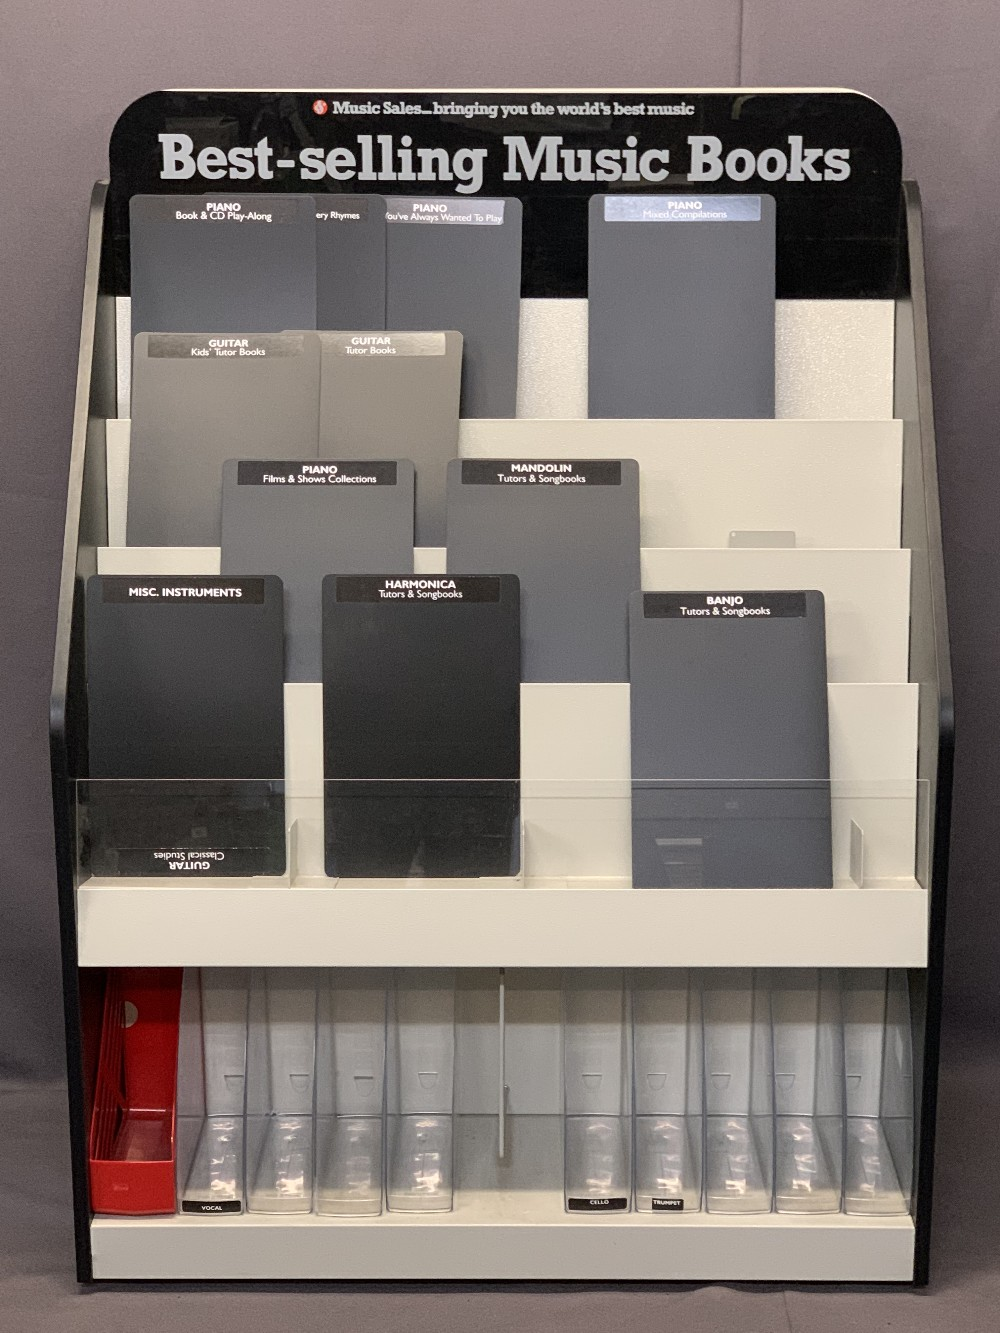 MUSIC SHOP DISPLAY STANDS FOR BEST SELLING MUSIC BOOKS (4) - on castors, 137.5cms H, 101cms W, 51cms